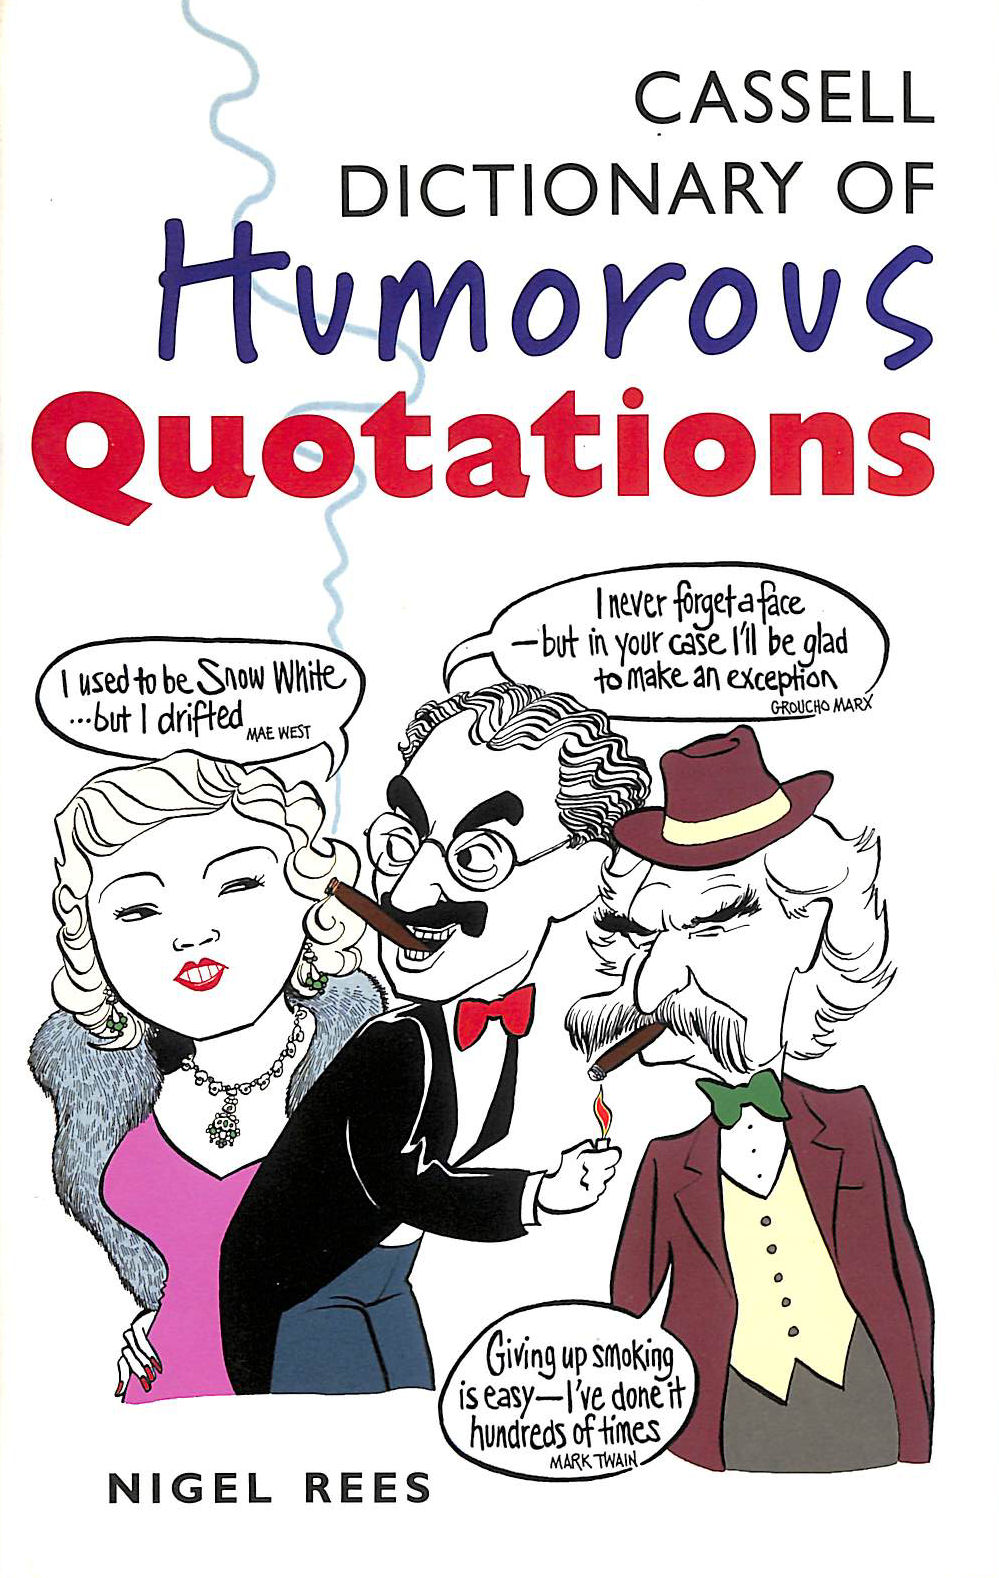 Image for Cassell's Humorous Quotations